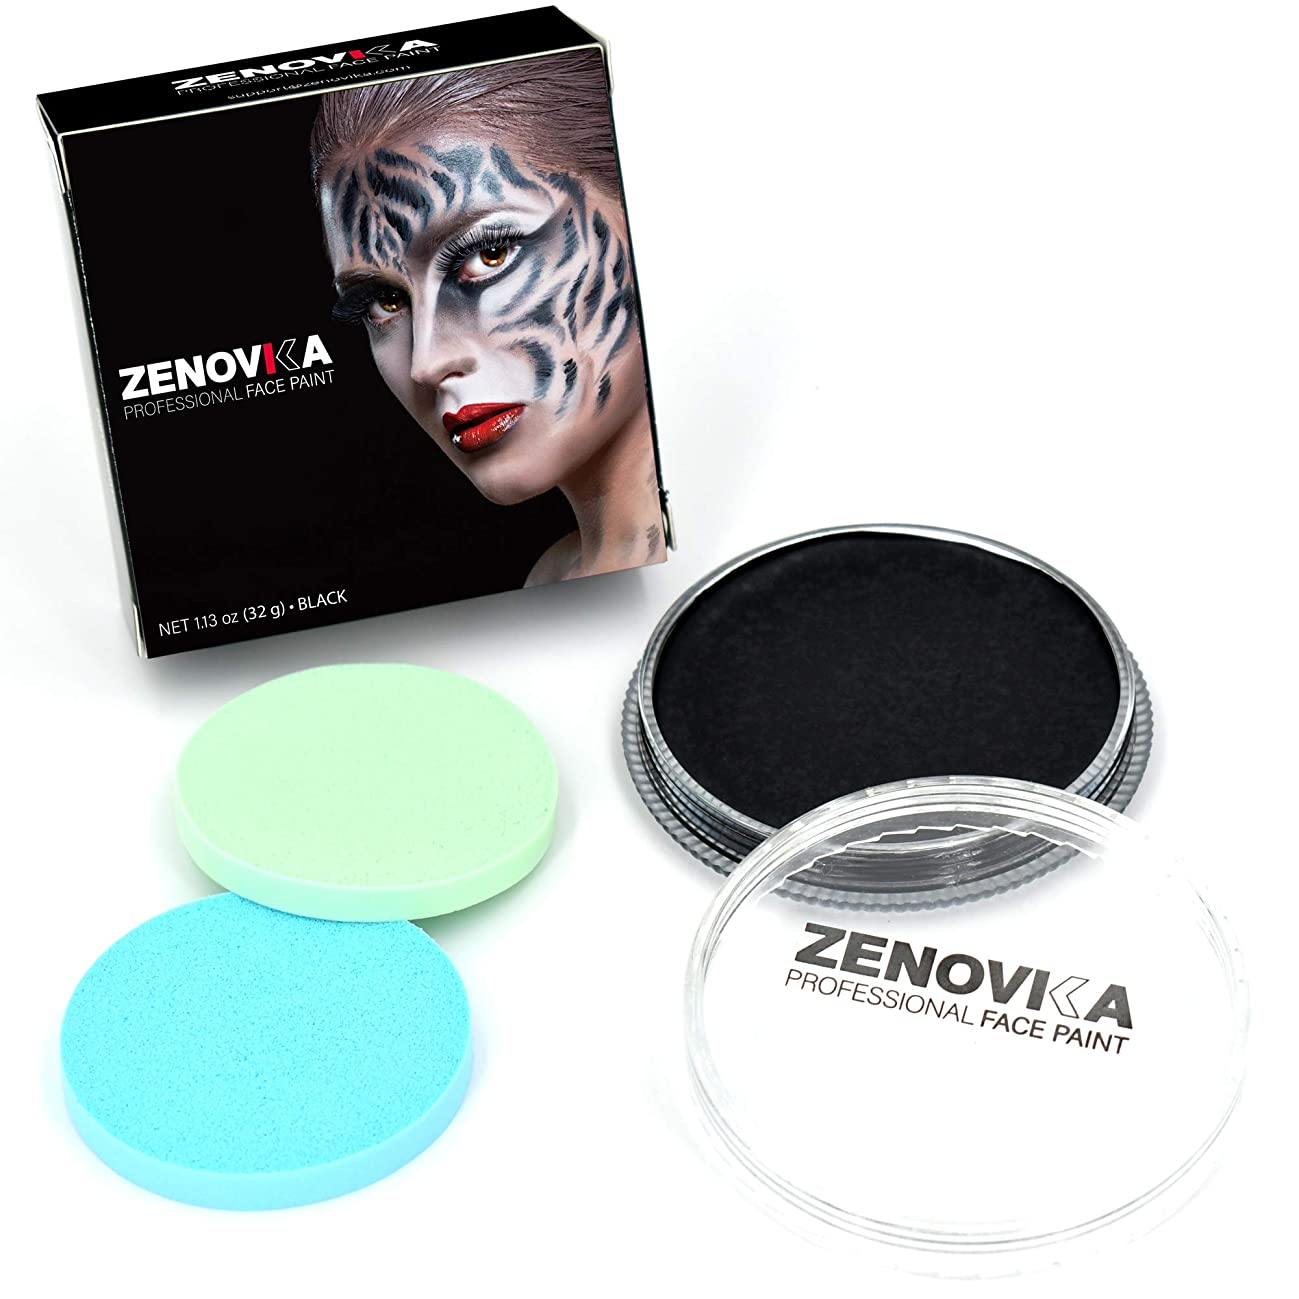 Black Face Paint - Large 32 g (1.13 oz) Water Based FacePaint + 2 Sponges, Perfect Halloween Makeup for Day of the Deads, Professional Face Paint, Face Paints Safe for Sensitive Skin